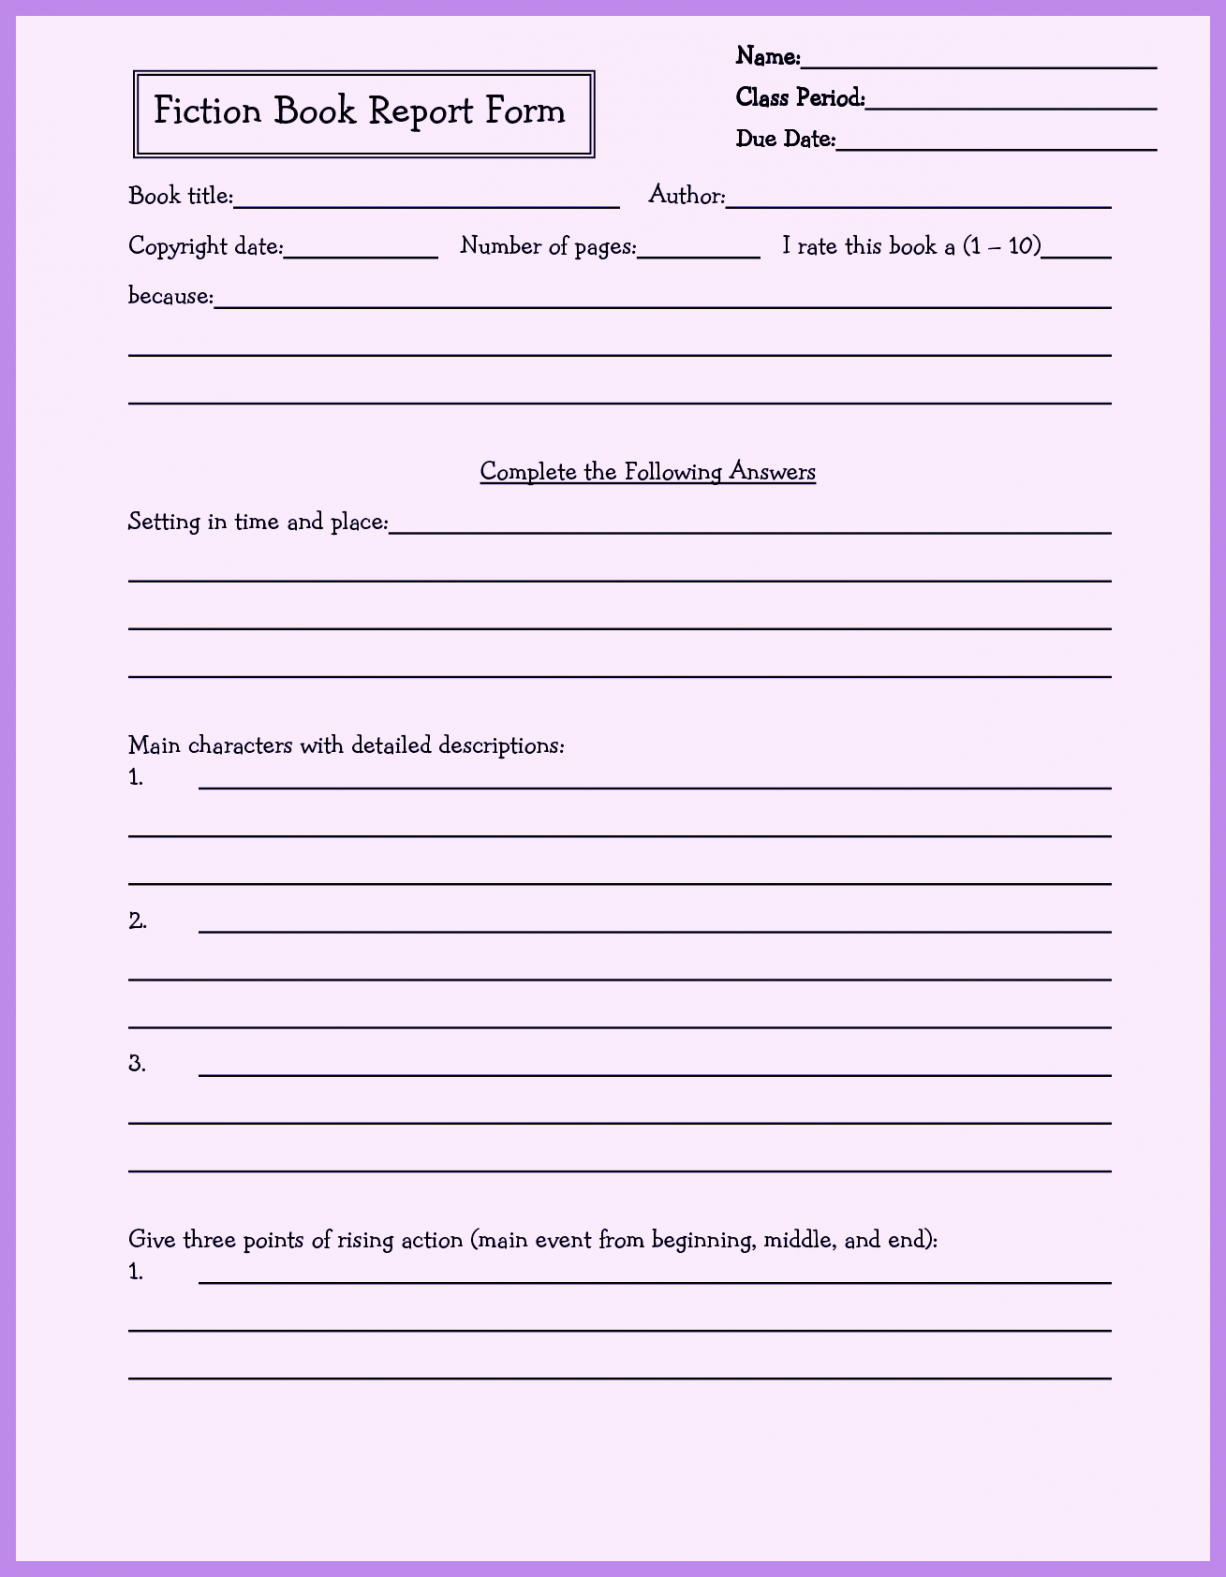 Usmc Book Report Template 9 Mind Numbing Facts About Usmc Book Report Template Book Report Templates Grade Book Template Biography Book Report Template